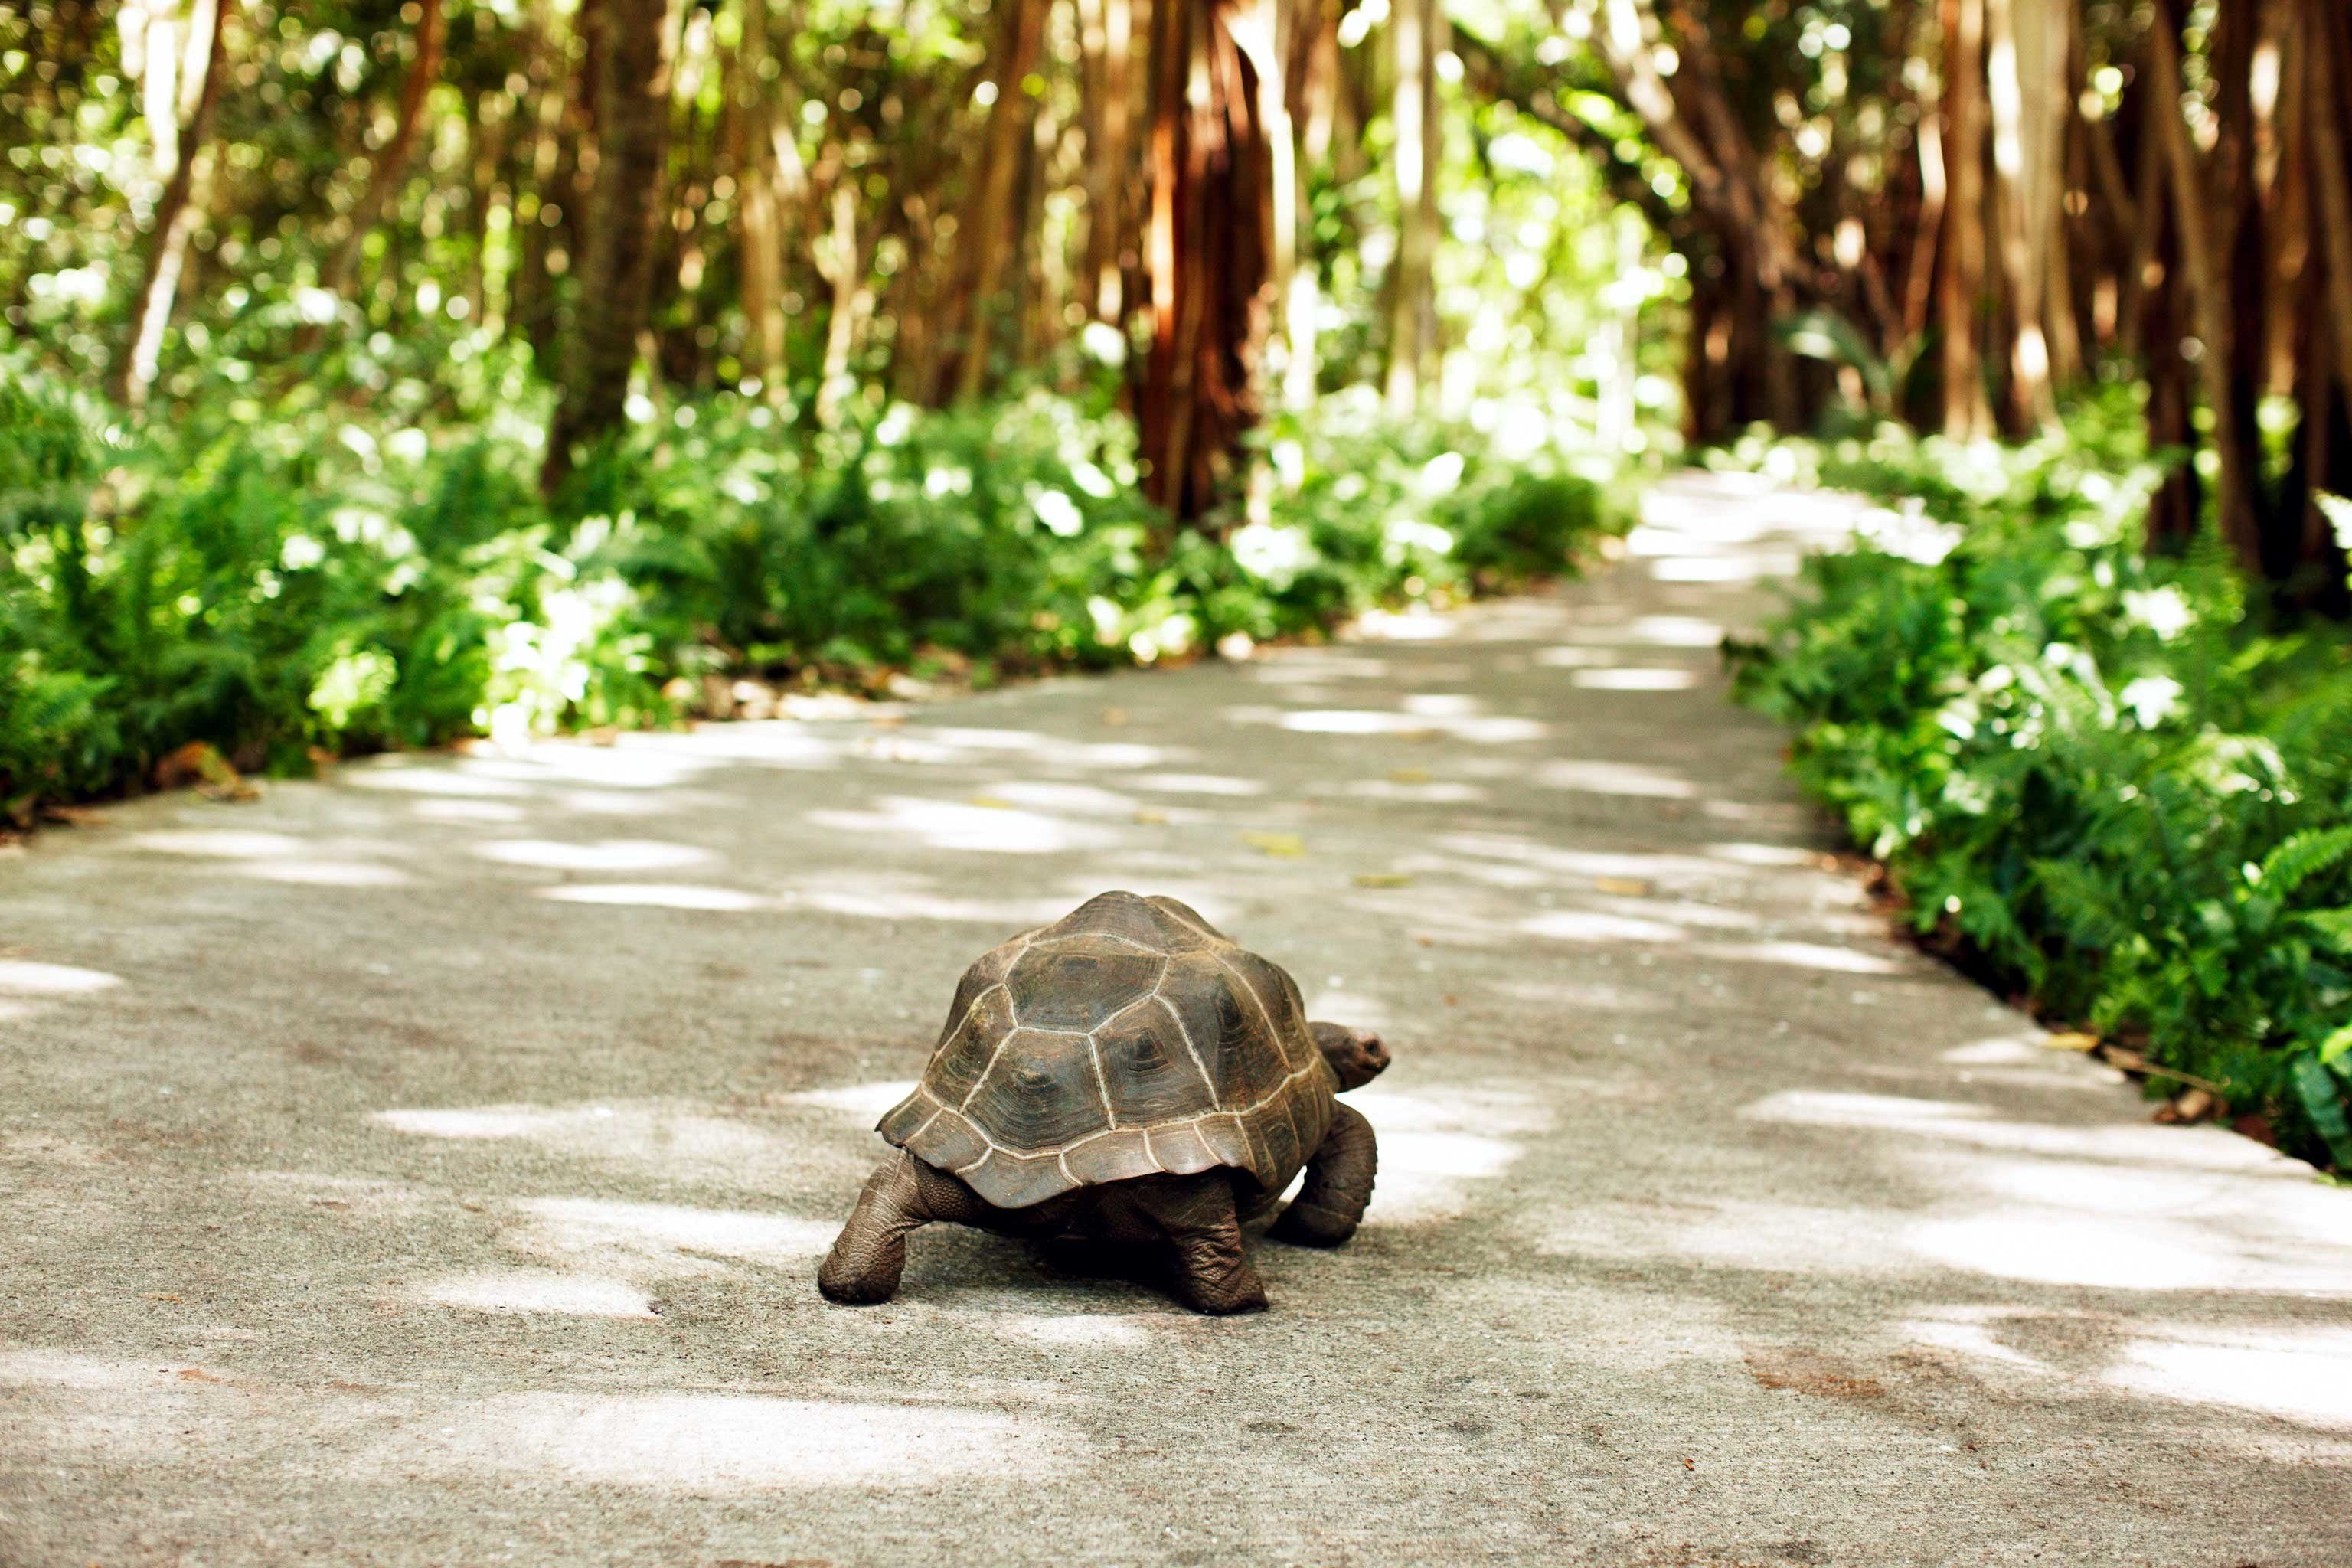 Hotels Jungle Outdoors reptile tree animal turtle ground green tortoise lawn curb